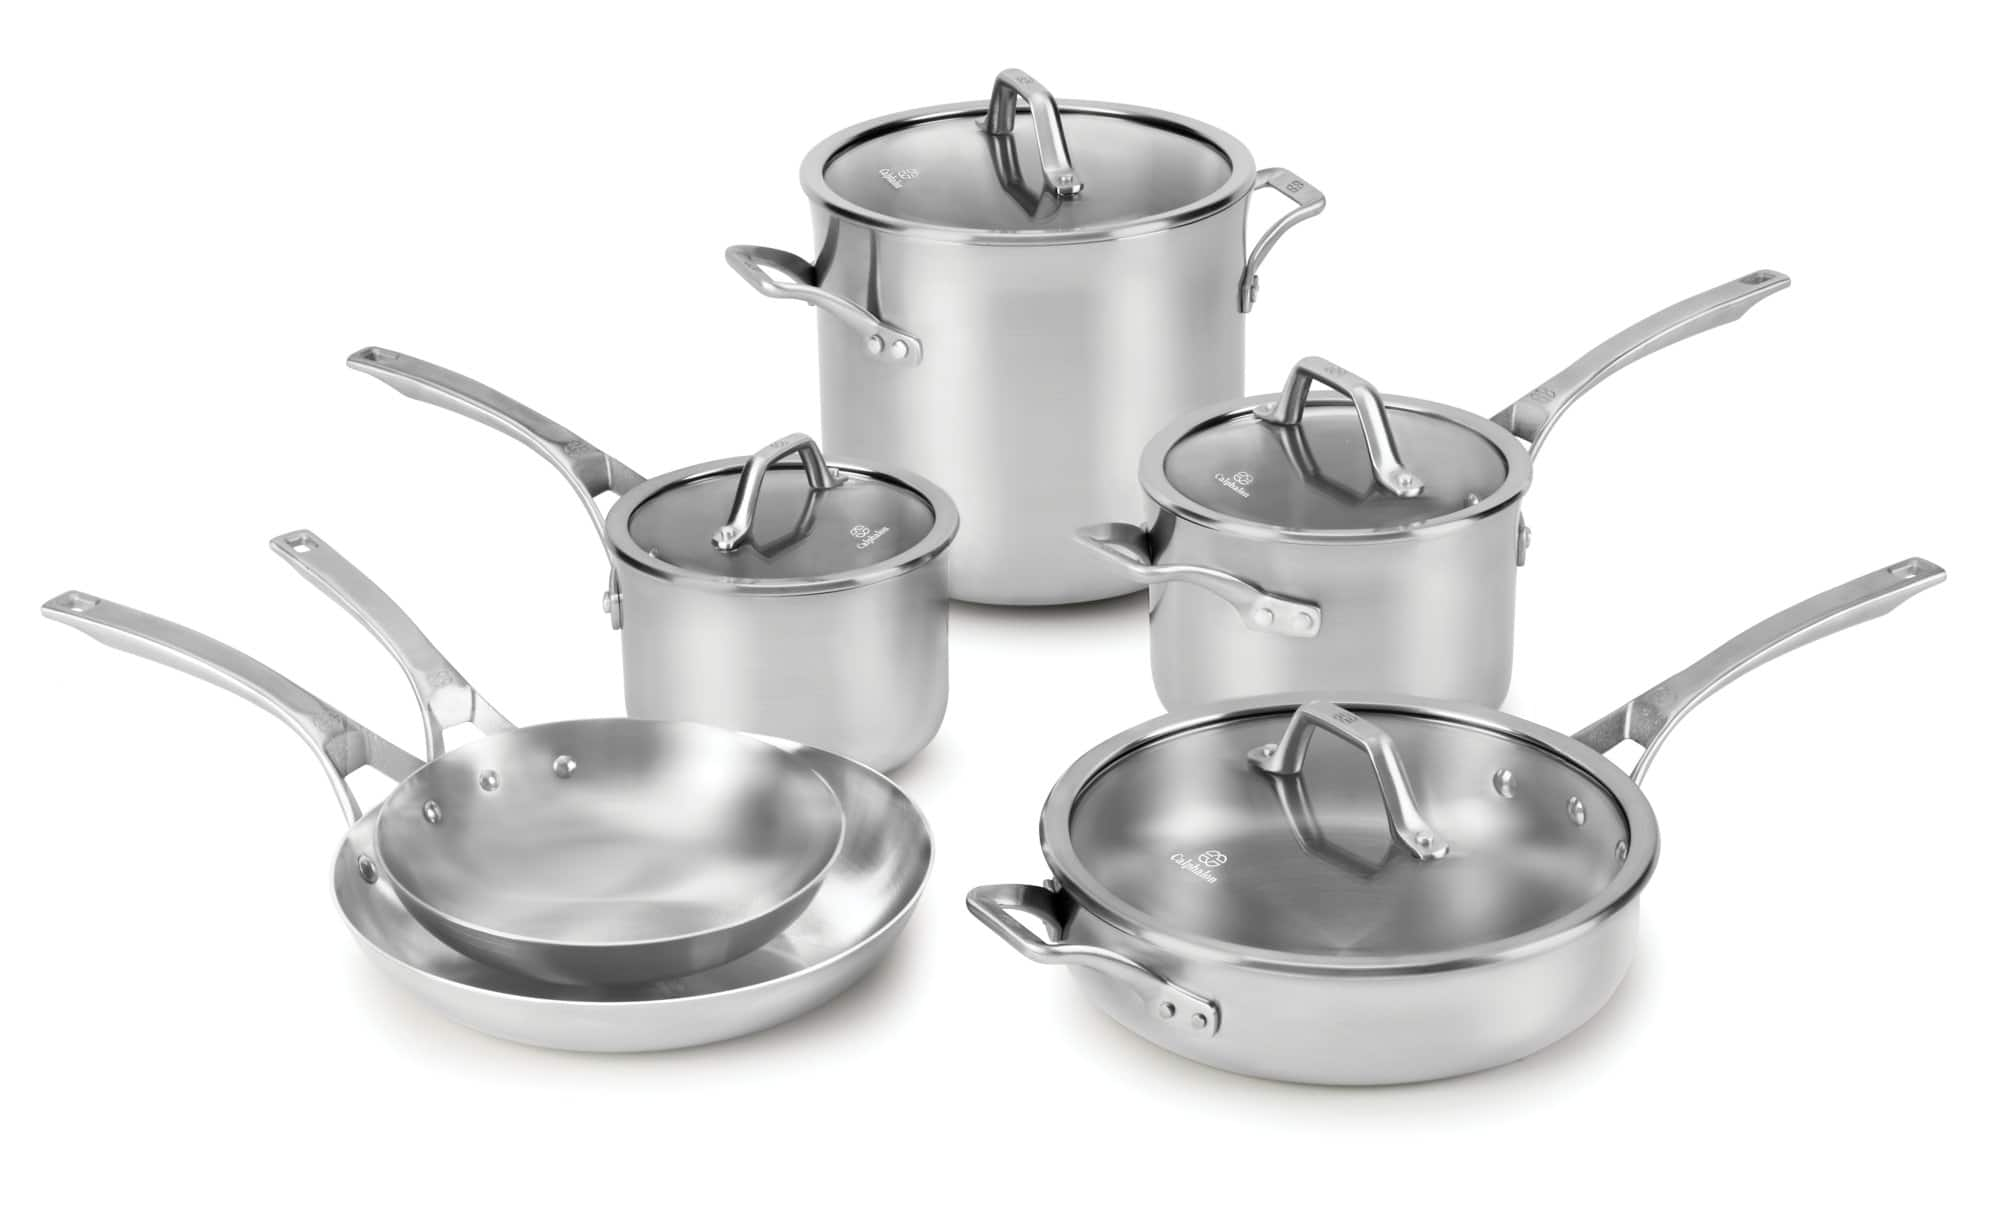 MACY'S Cookwares ON SALE 40% and 20% OFF $333